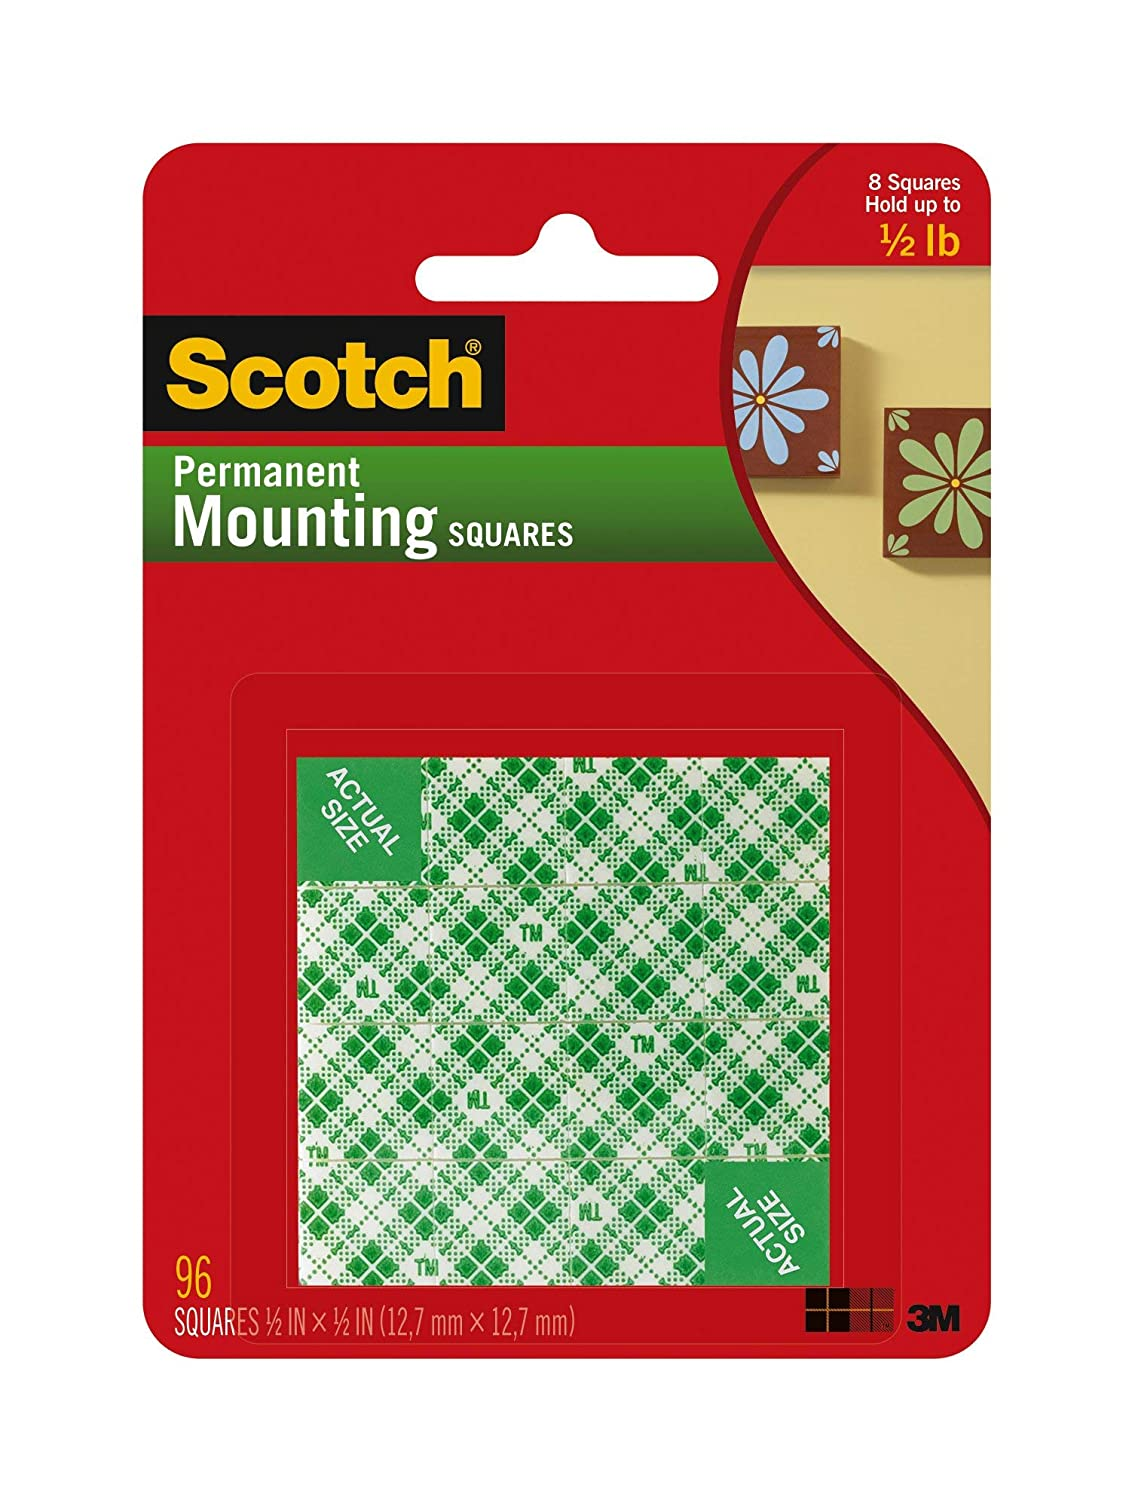 - 1 Indoor Mounting Squares White 1//2 -in x 1//2-in 111-SML 96-Squares